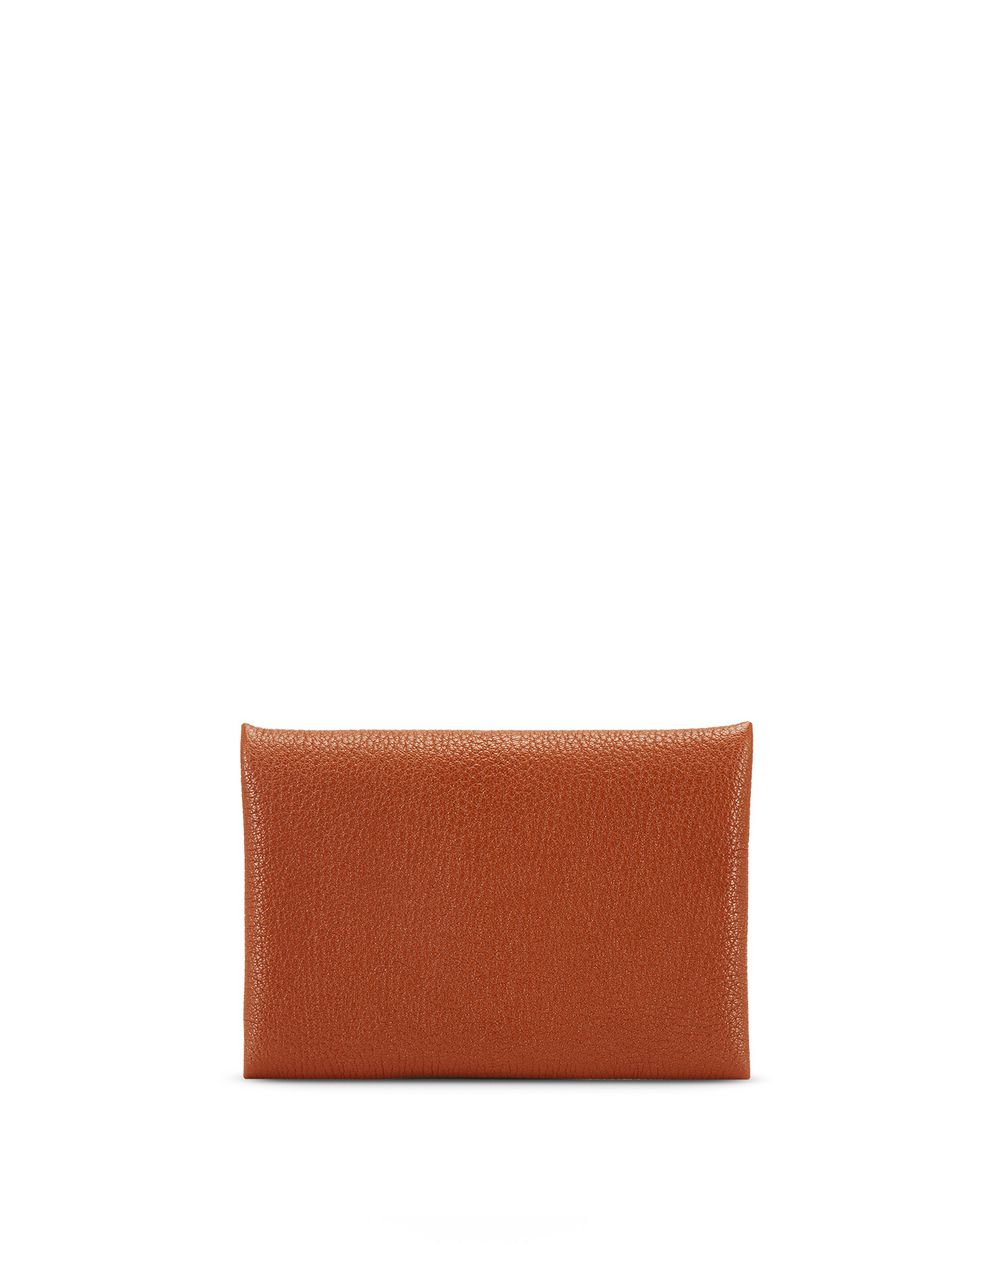 EARTH-COLOURED ENVELOPE CLUTCH - Lanvin